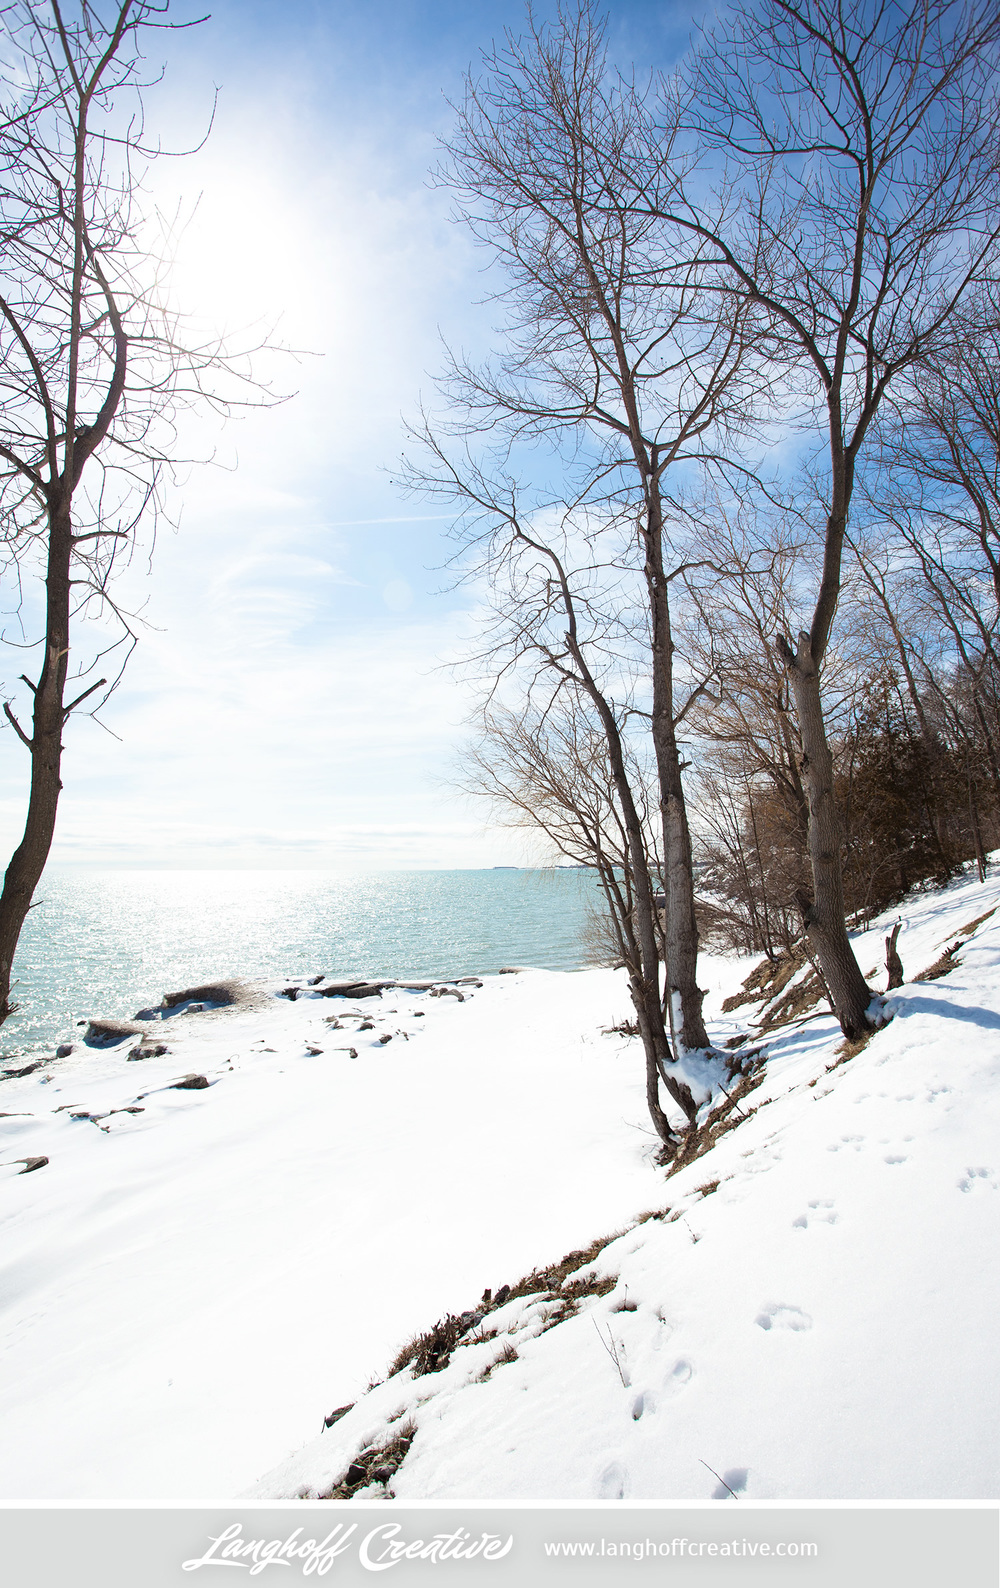 LanghoffCreative-20130308-winter19-image.jpg